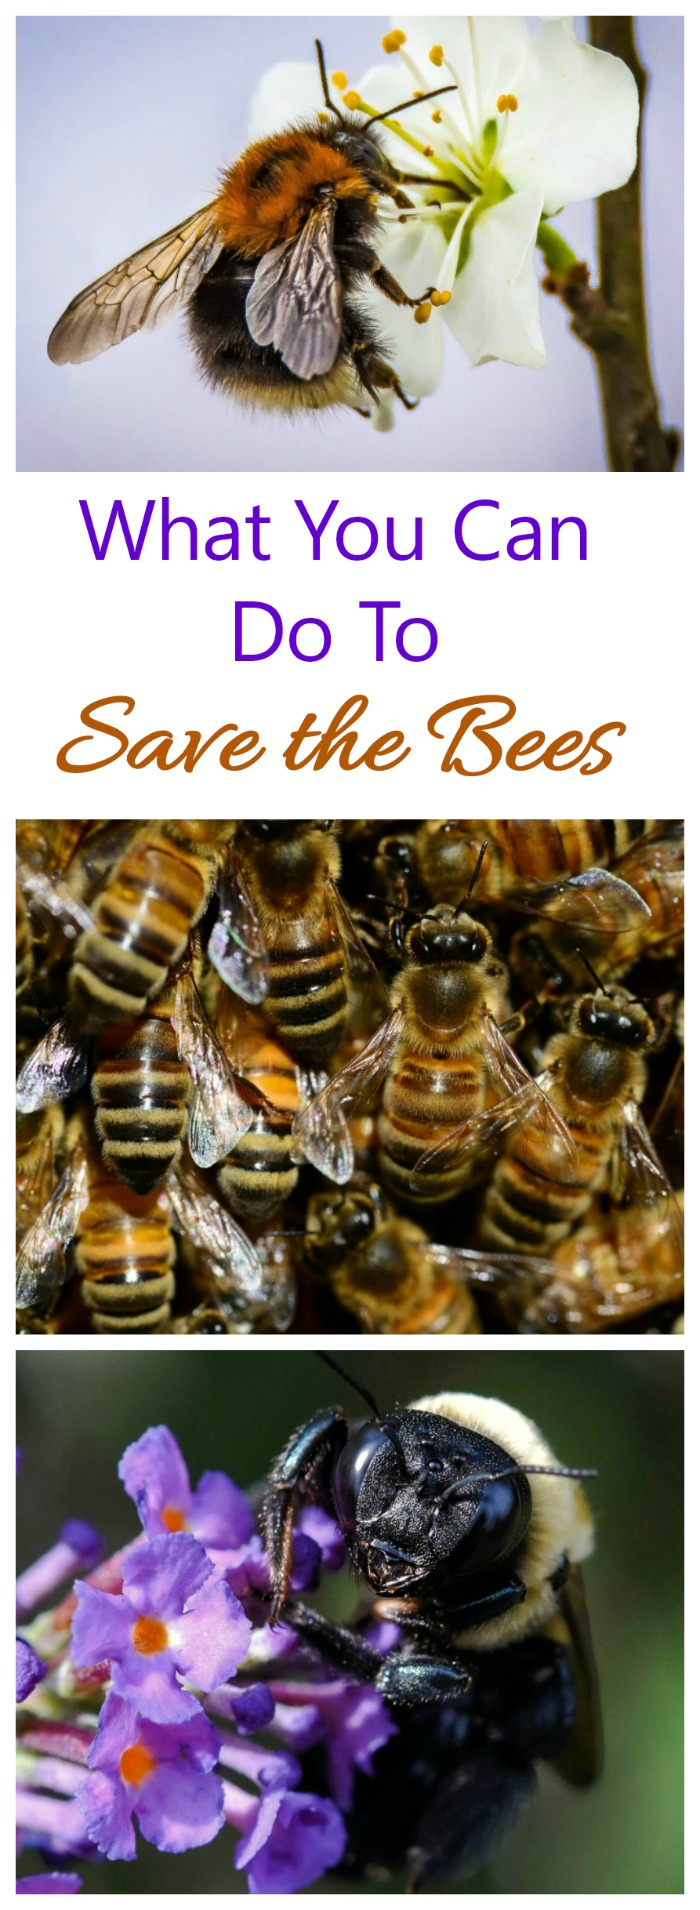 The declining bee population affects our food supply. See what you can do to help attract bees.